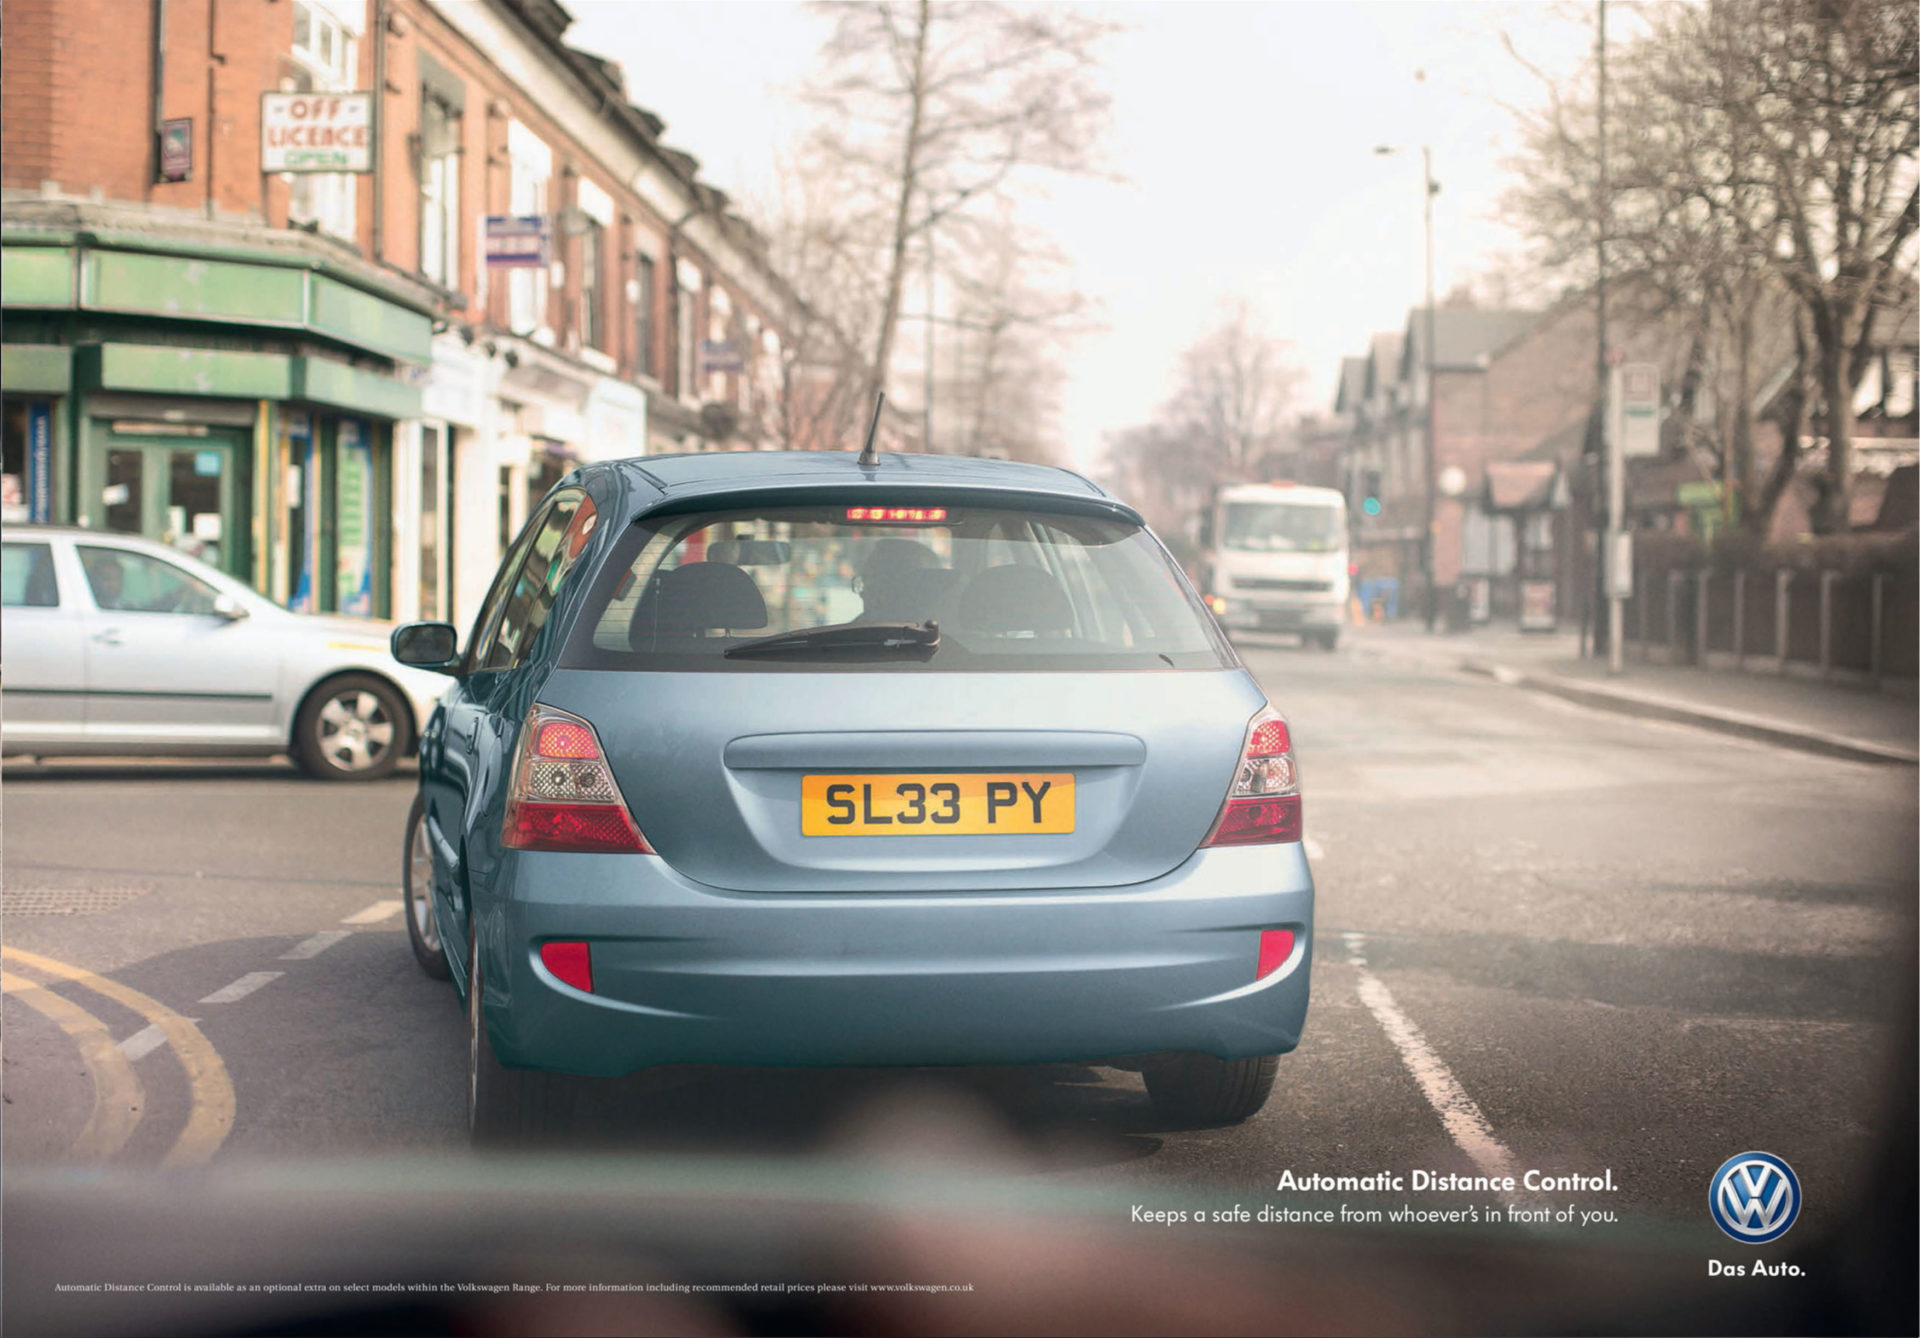 VW – Volkswagen automatic distance control campaign Adam & Eve DDB – Shaw & Shaw Photography – Shaw and Shaw advertising photographers